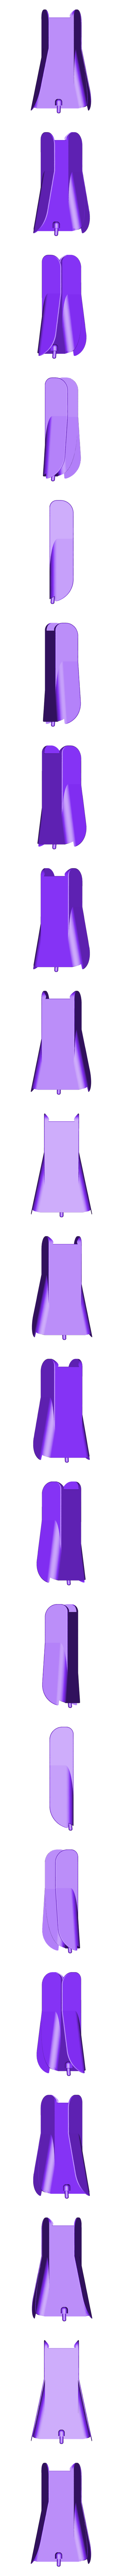 Violet land yacht. Propeller prop with